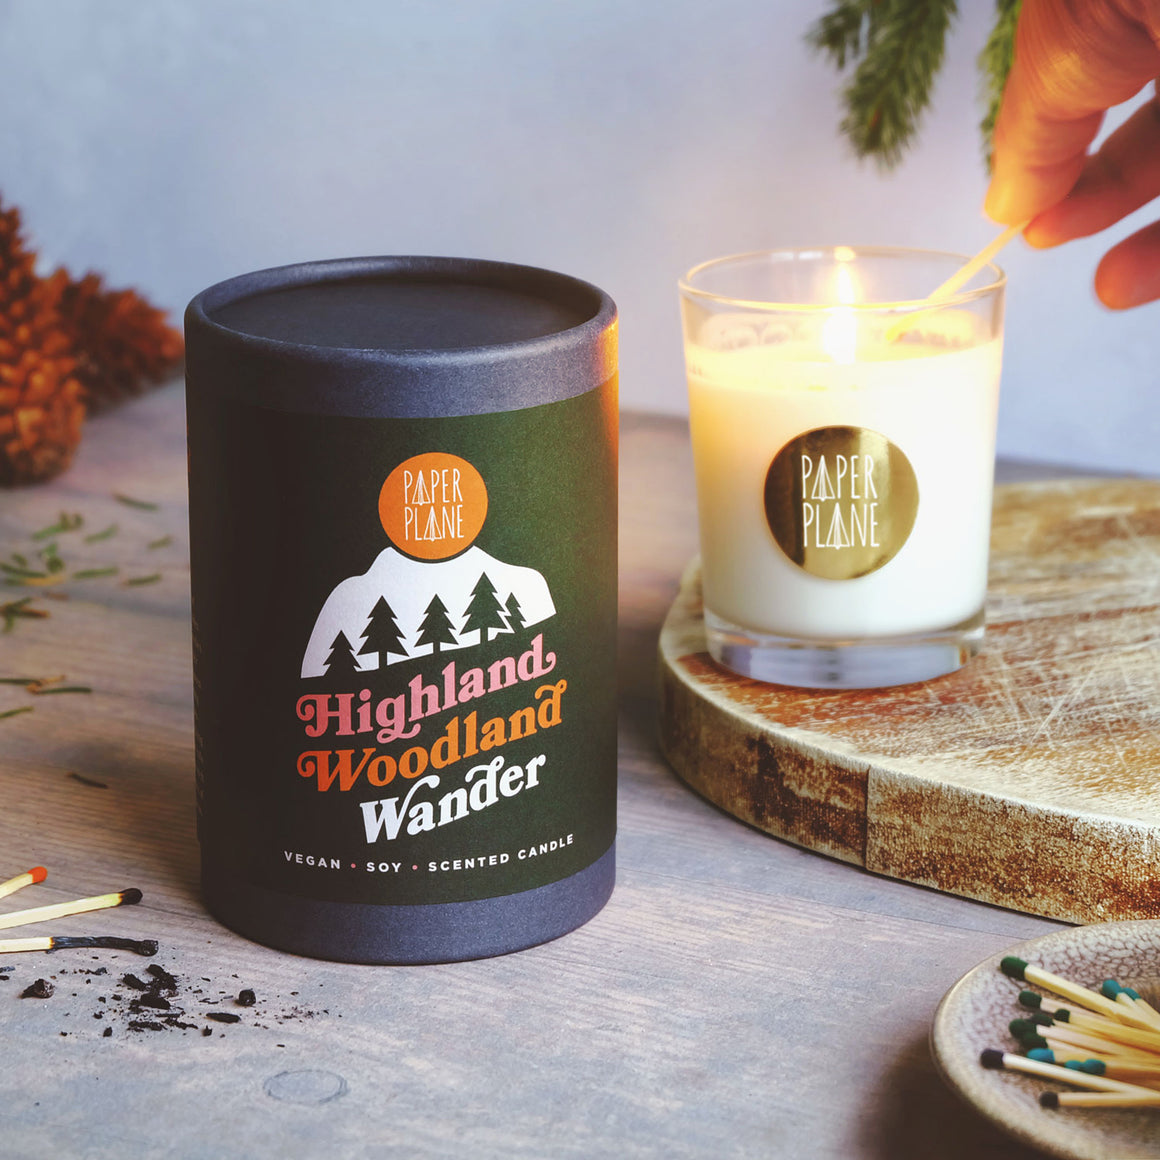 Highland Woodland Wander Vegan Soy Candle